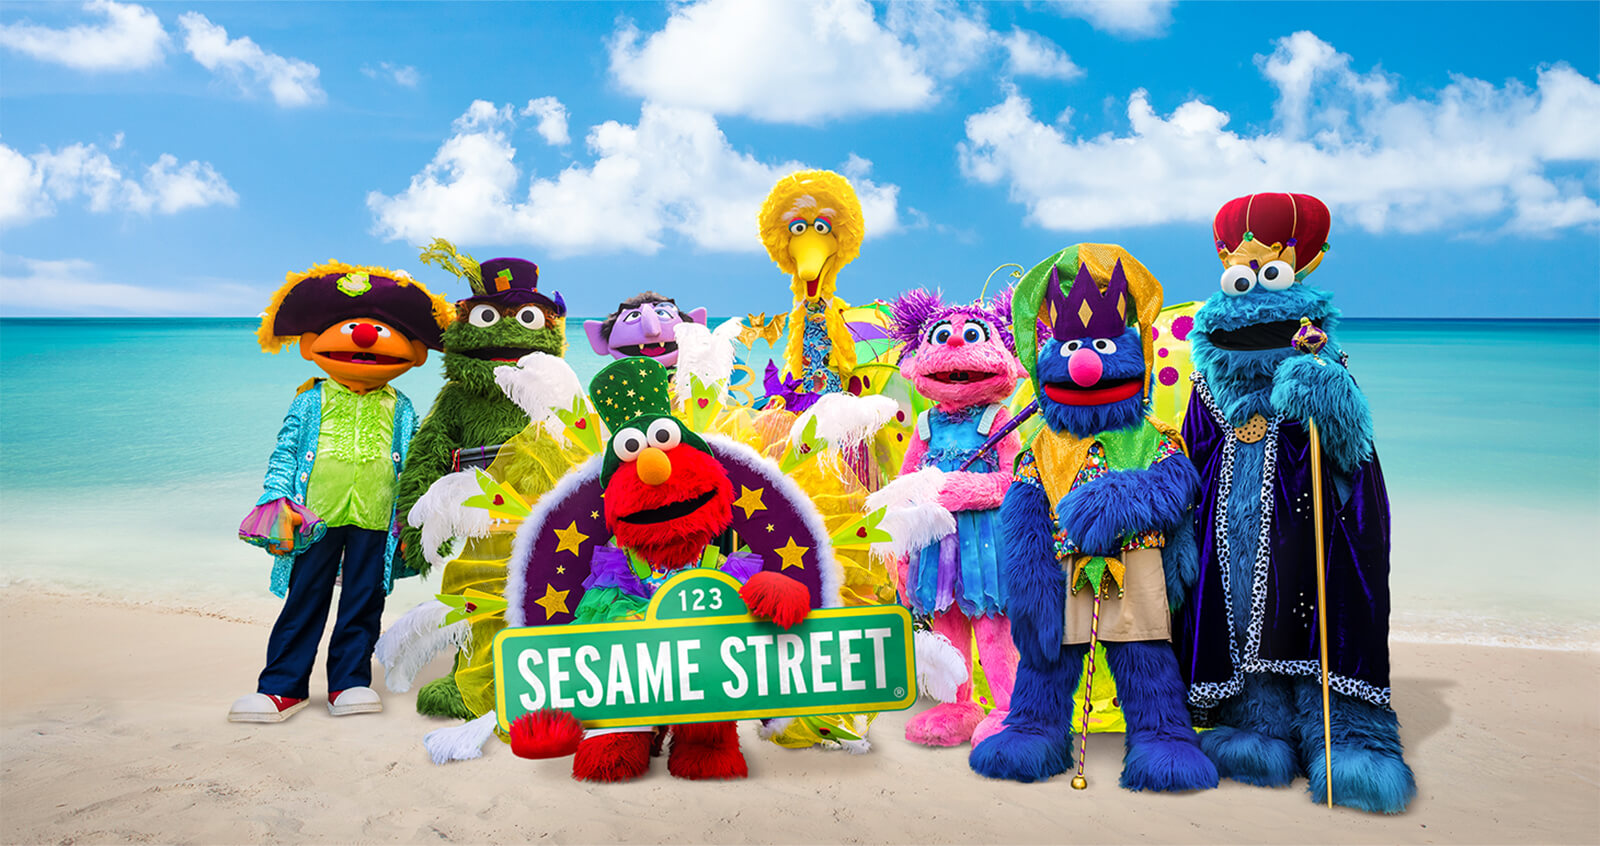 Sesame Street Resorts Vacation Packages Beaches